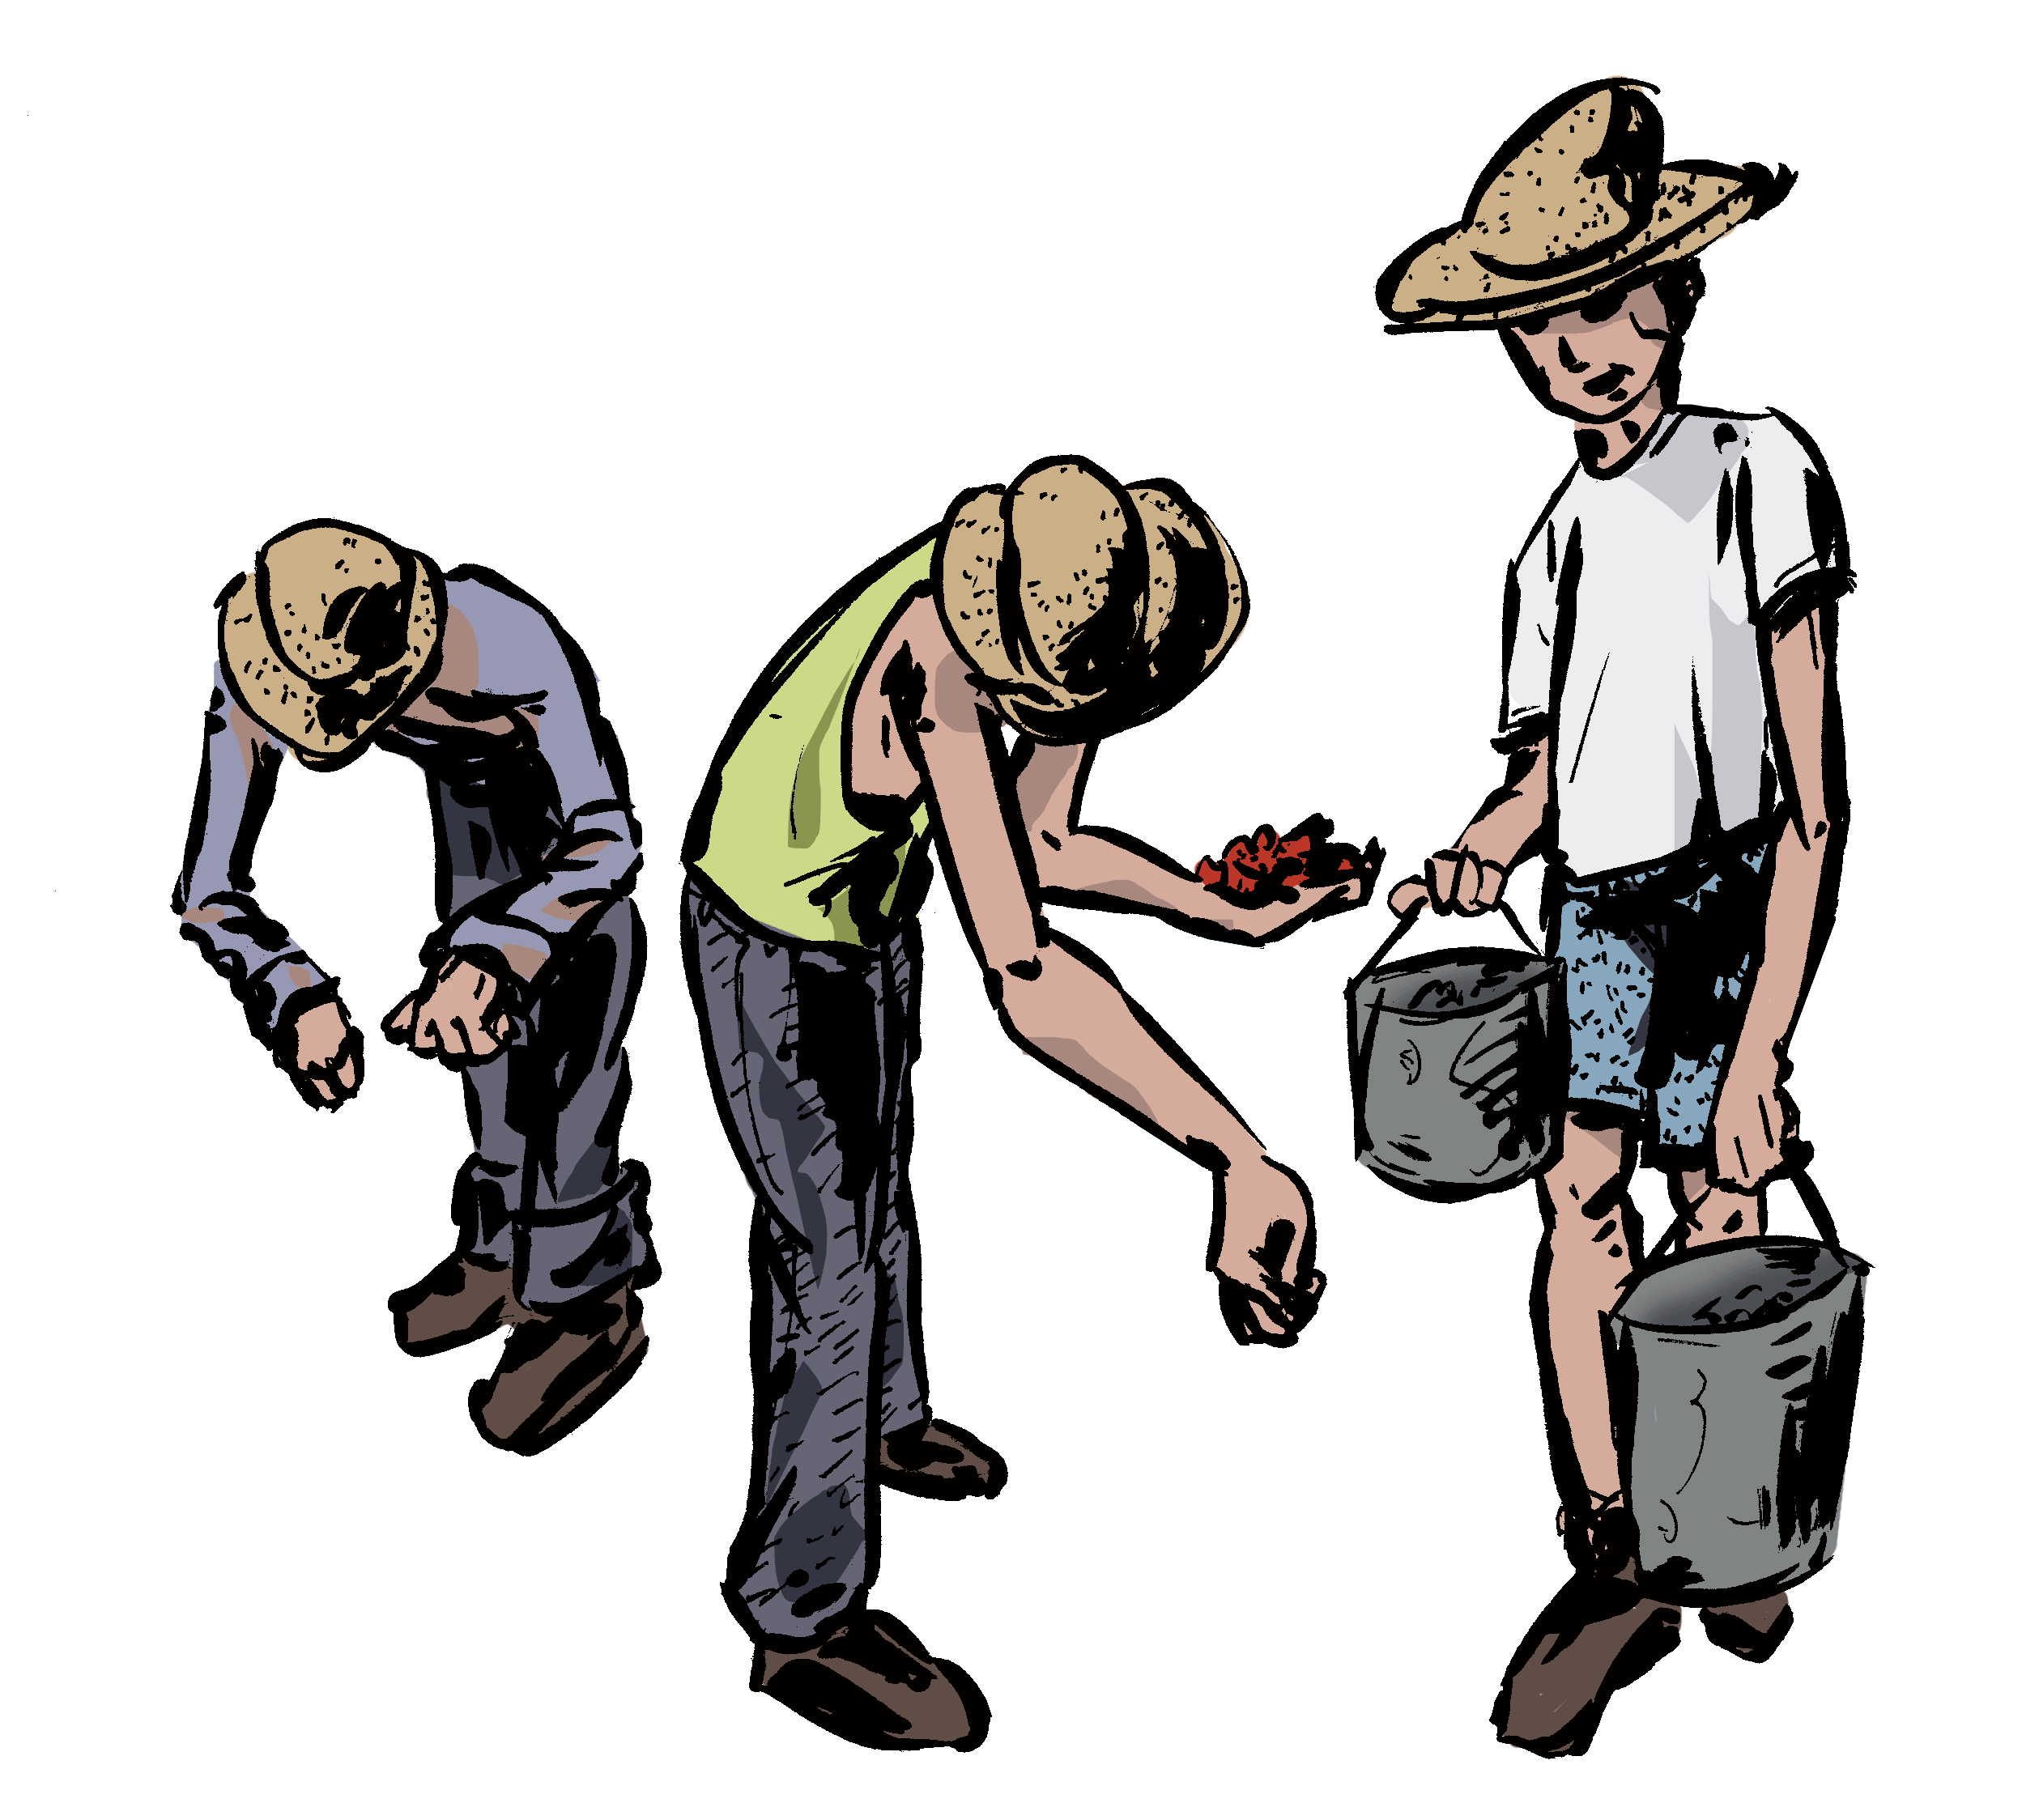 Immigrant drawing. Illustration of migrant workers